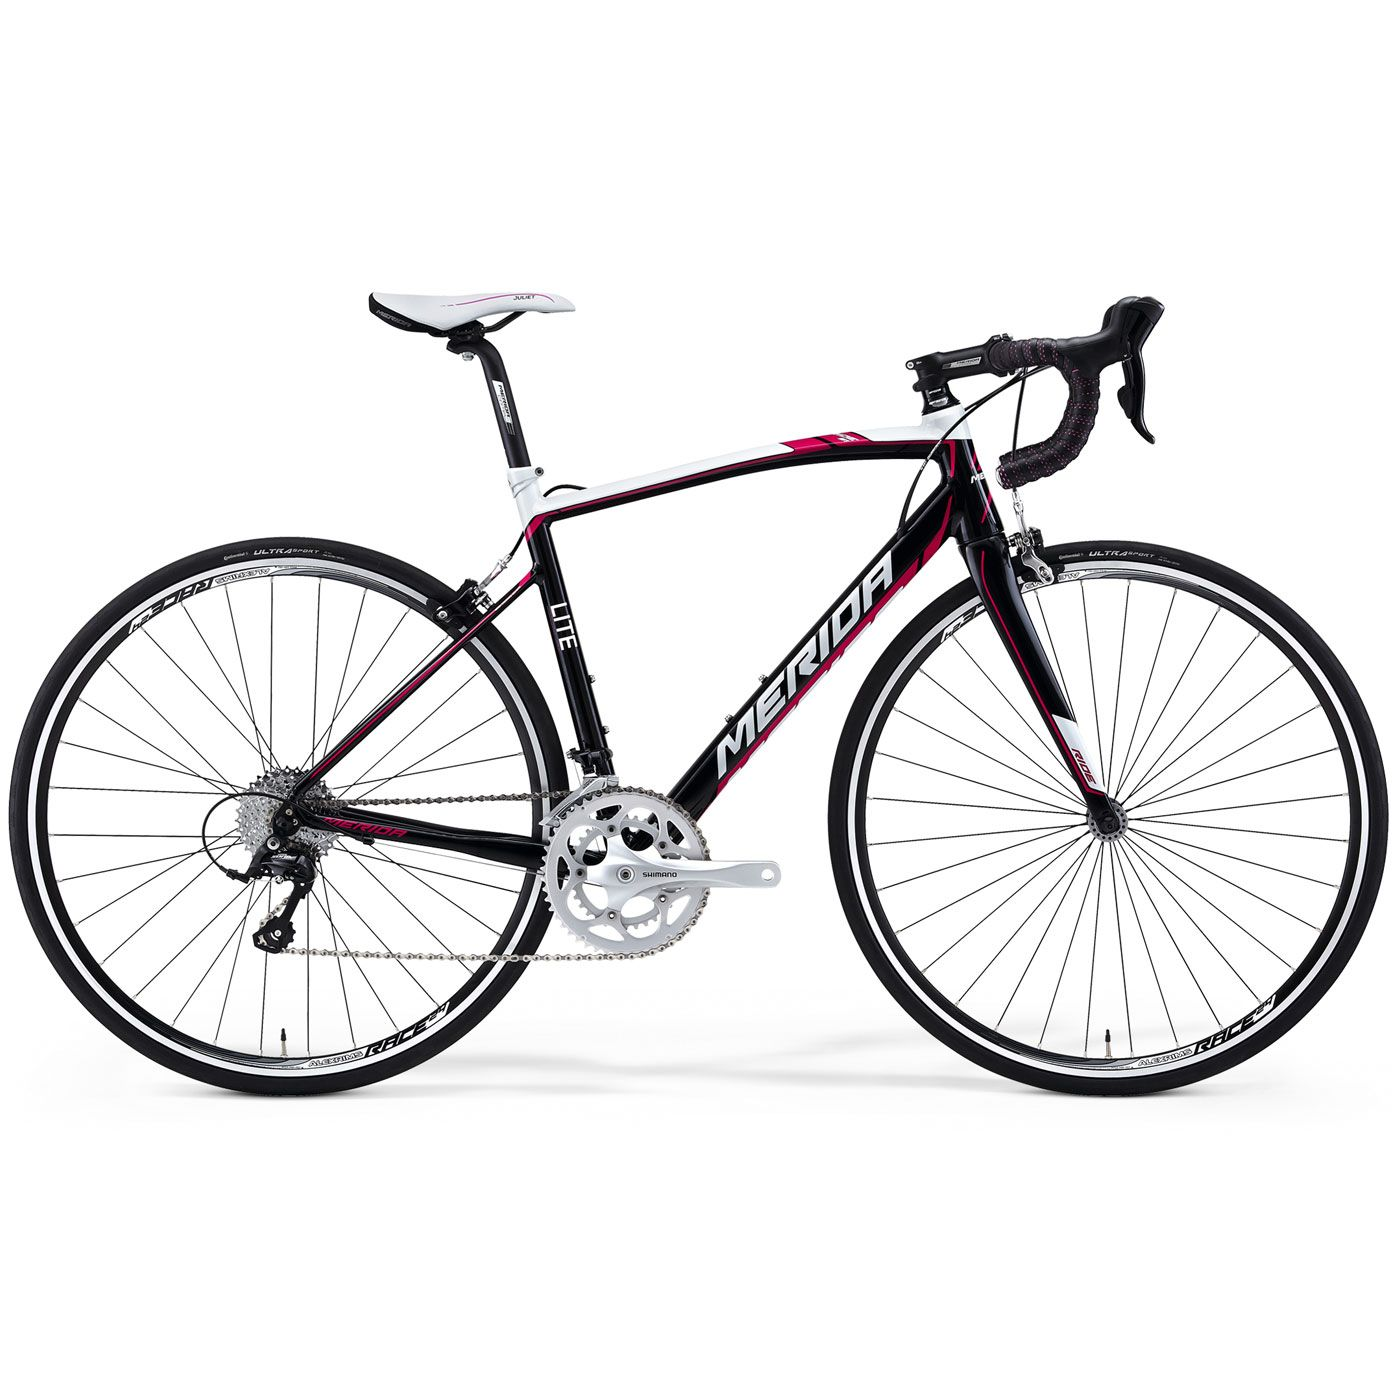 My Next Bike Merida 2014 Ride 91 Juliet Ladies Road Merida